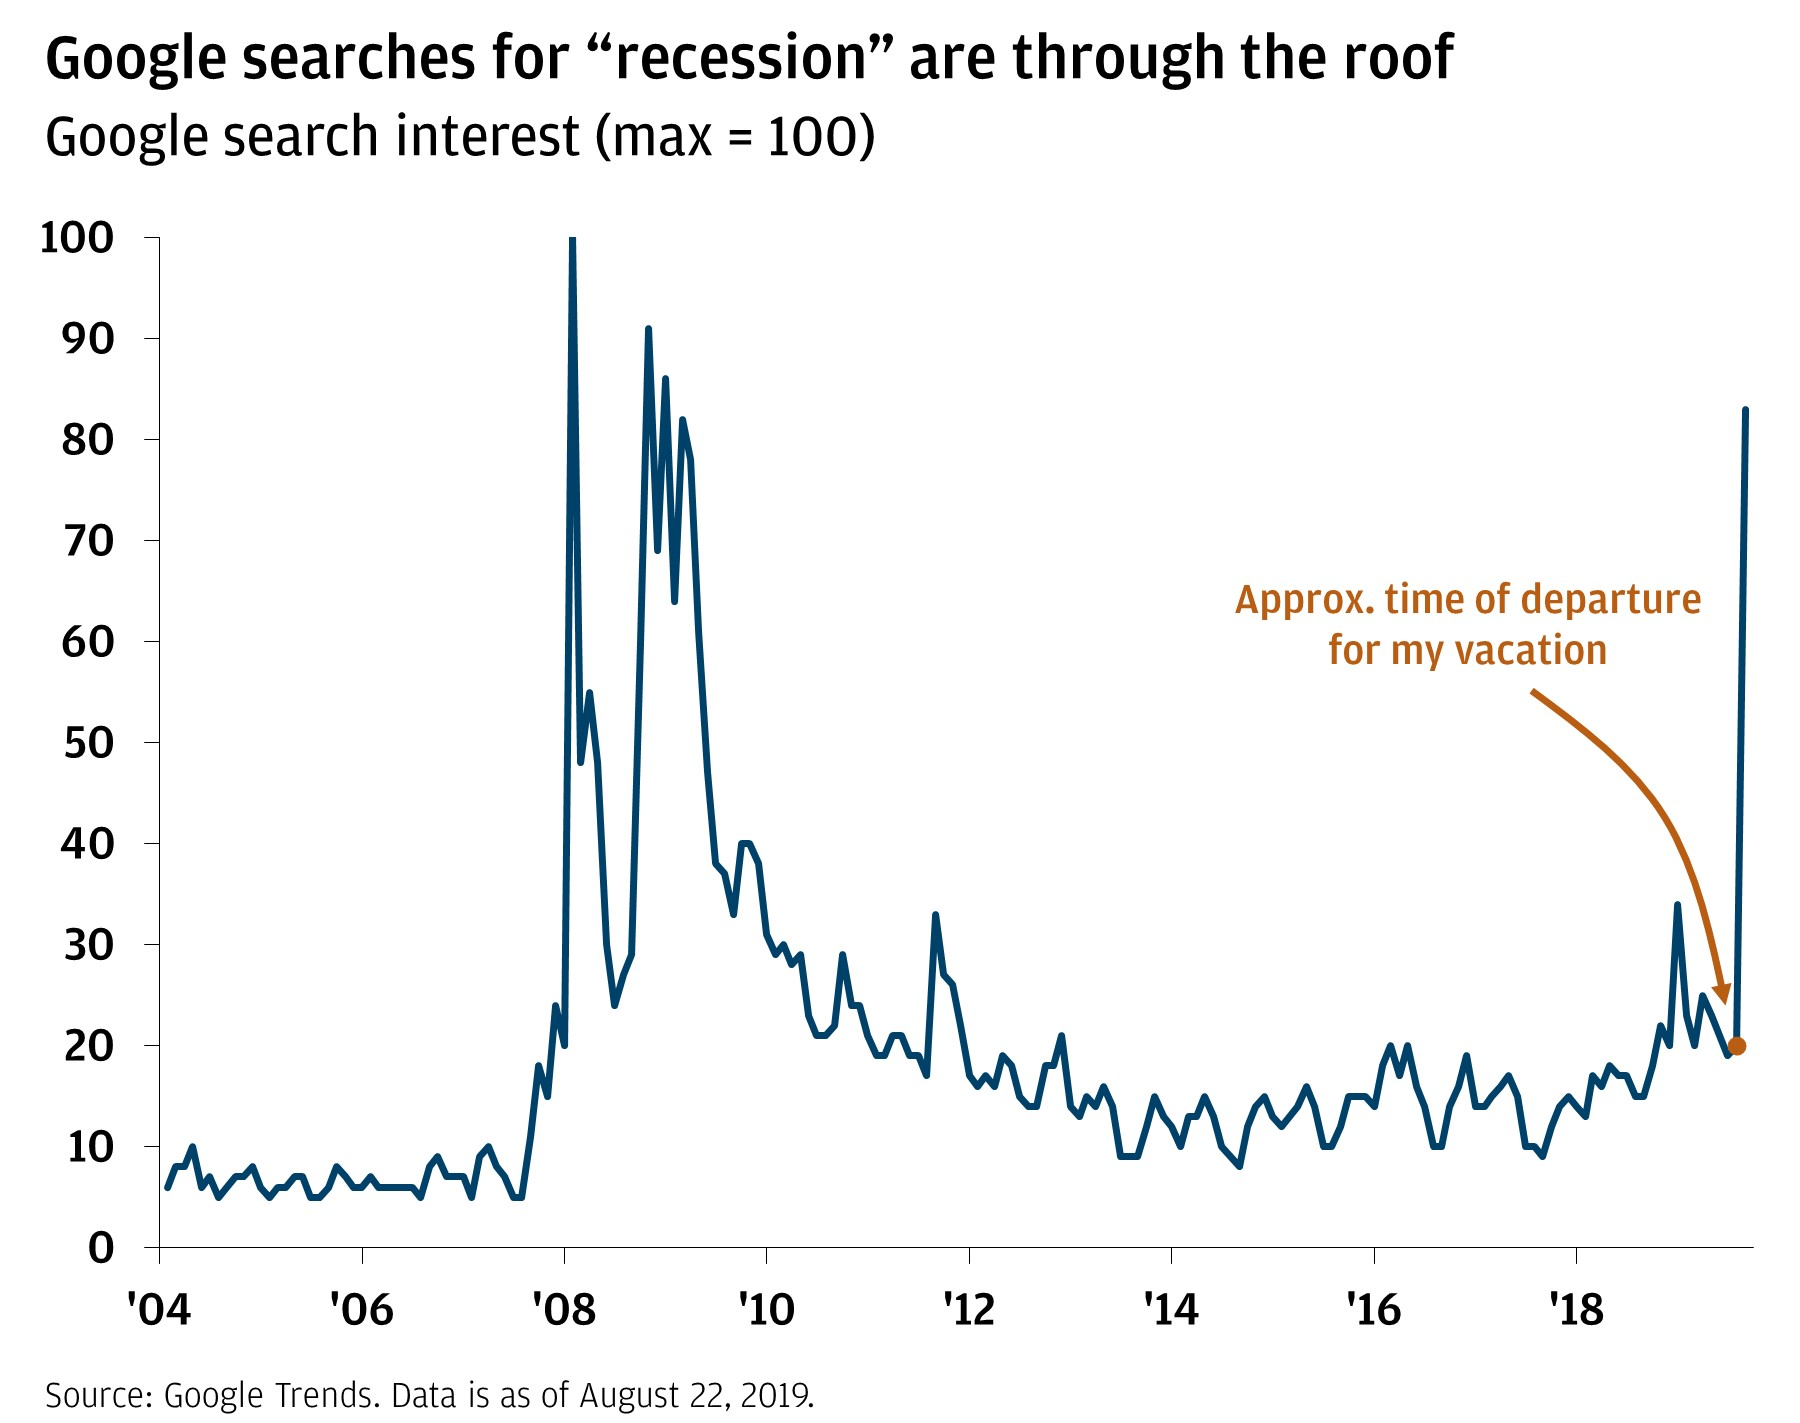 https://www.jpmorgan.com/content/dam/jpm/securities/images/article-images/recession-obsession-chart1.jpg